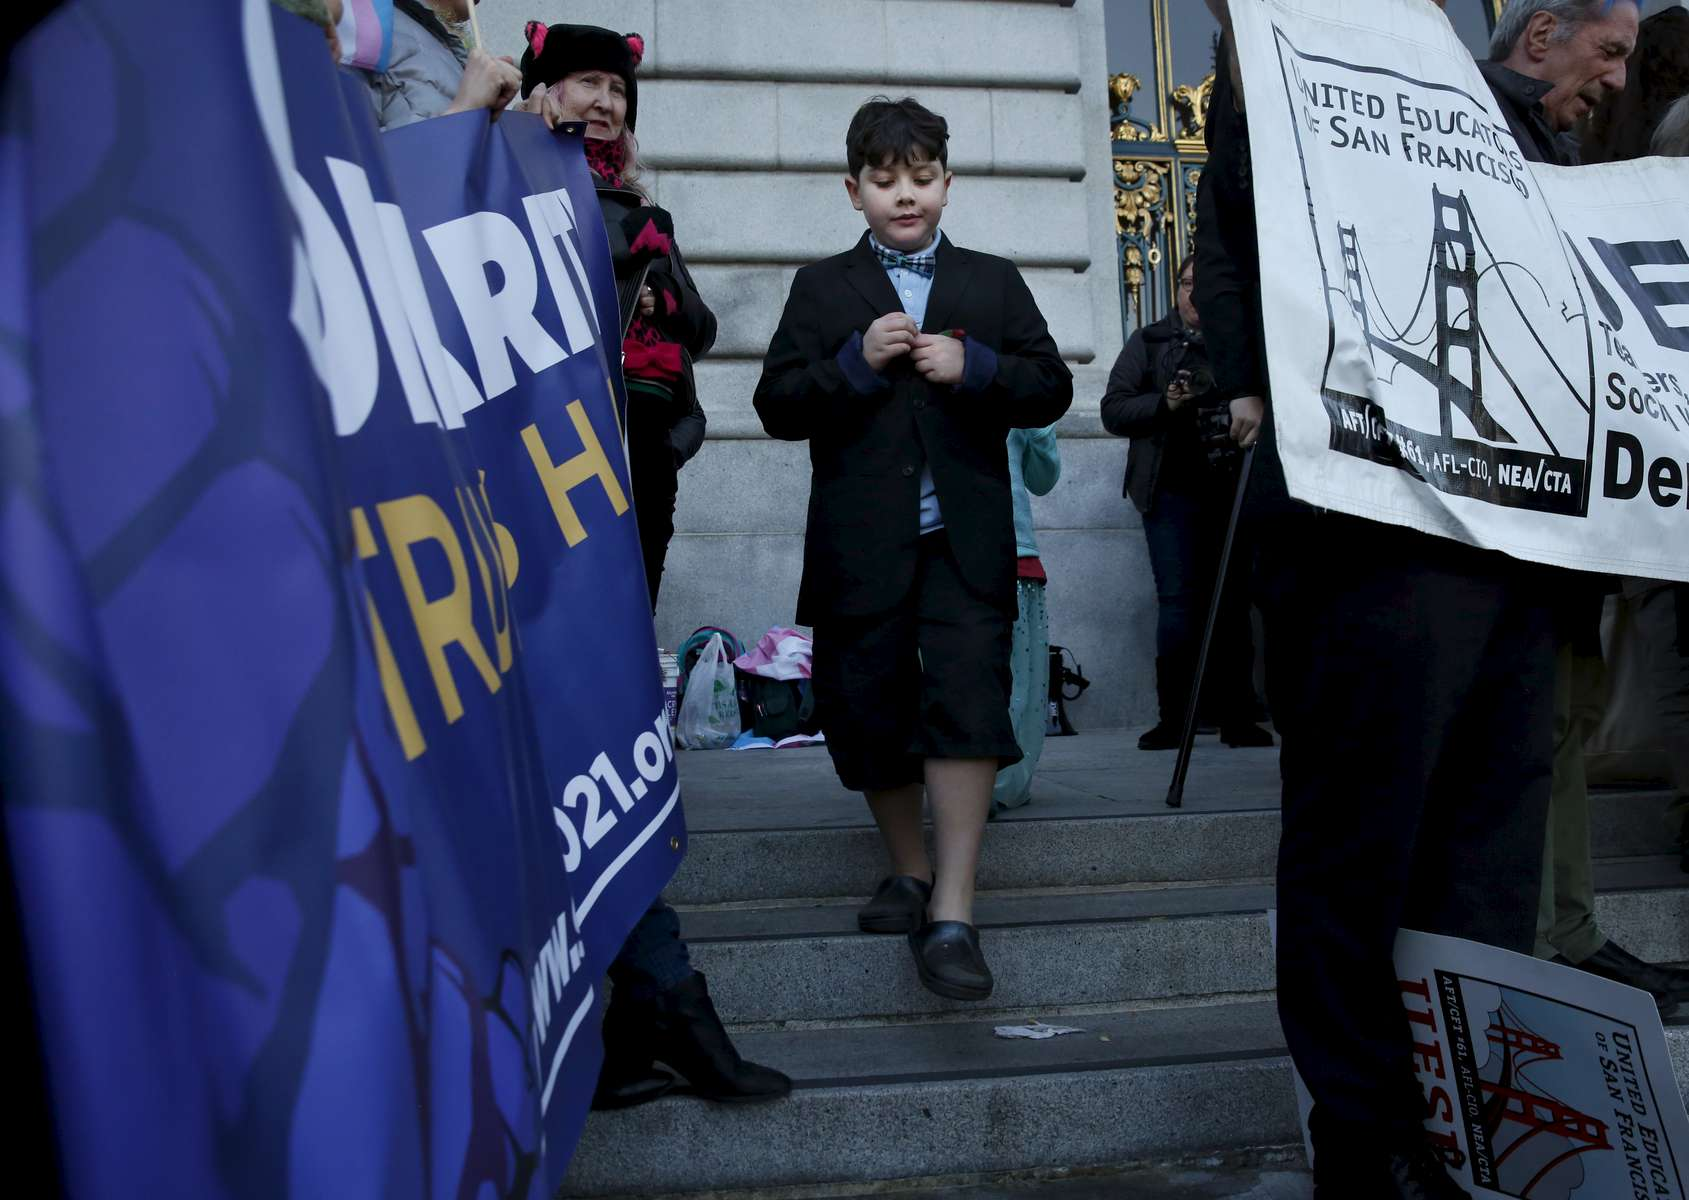 James Kaplan, 9, walks between sign holders after getting a snack on the front steps of City Hall during a Rally to Support Trans Youth after his mother read a letter to the crowd that he wrote Feb. 23, 2017 the day after President Donald Trump removed Obama era bathroom access recommendations in San Francisco, Calif.